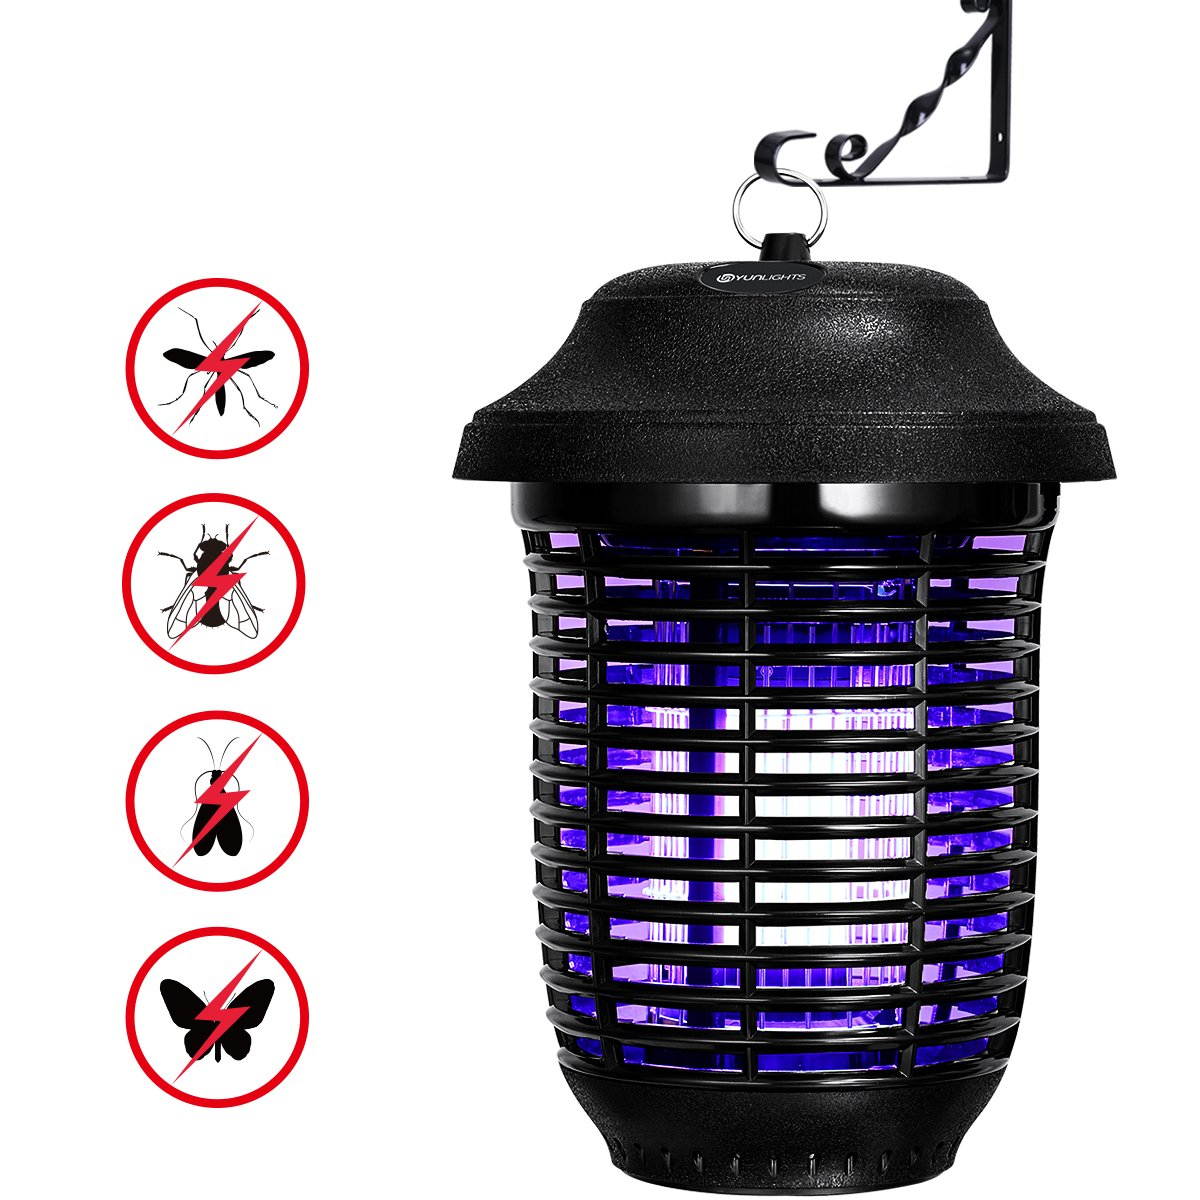 YUNLIGHTS Electric Bug Zapper, 40W Outdoor Mosquito Killer Lantern with Free Hanger, IPX4 Insect Fly Zapper Light for Patio, Gardens, Yards, Pool Area